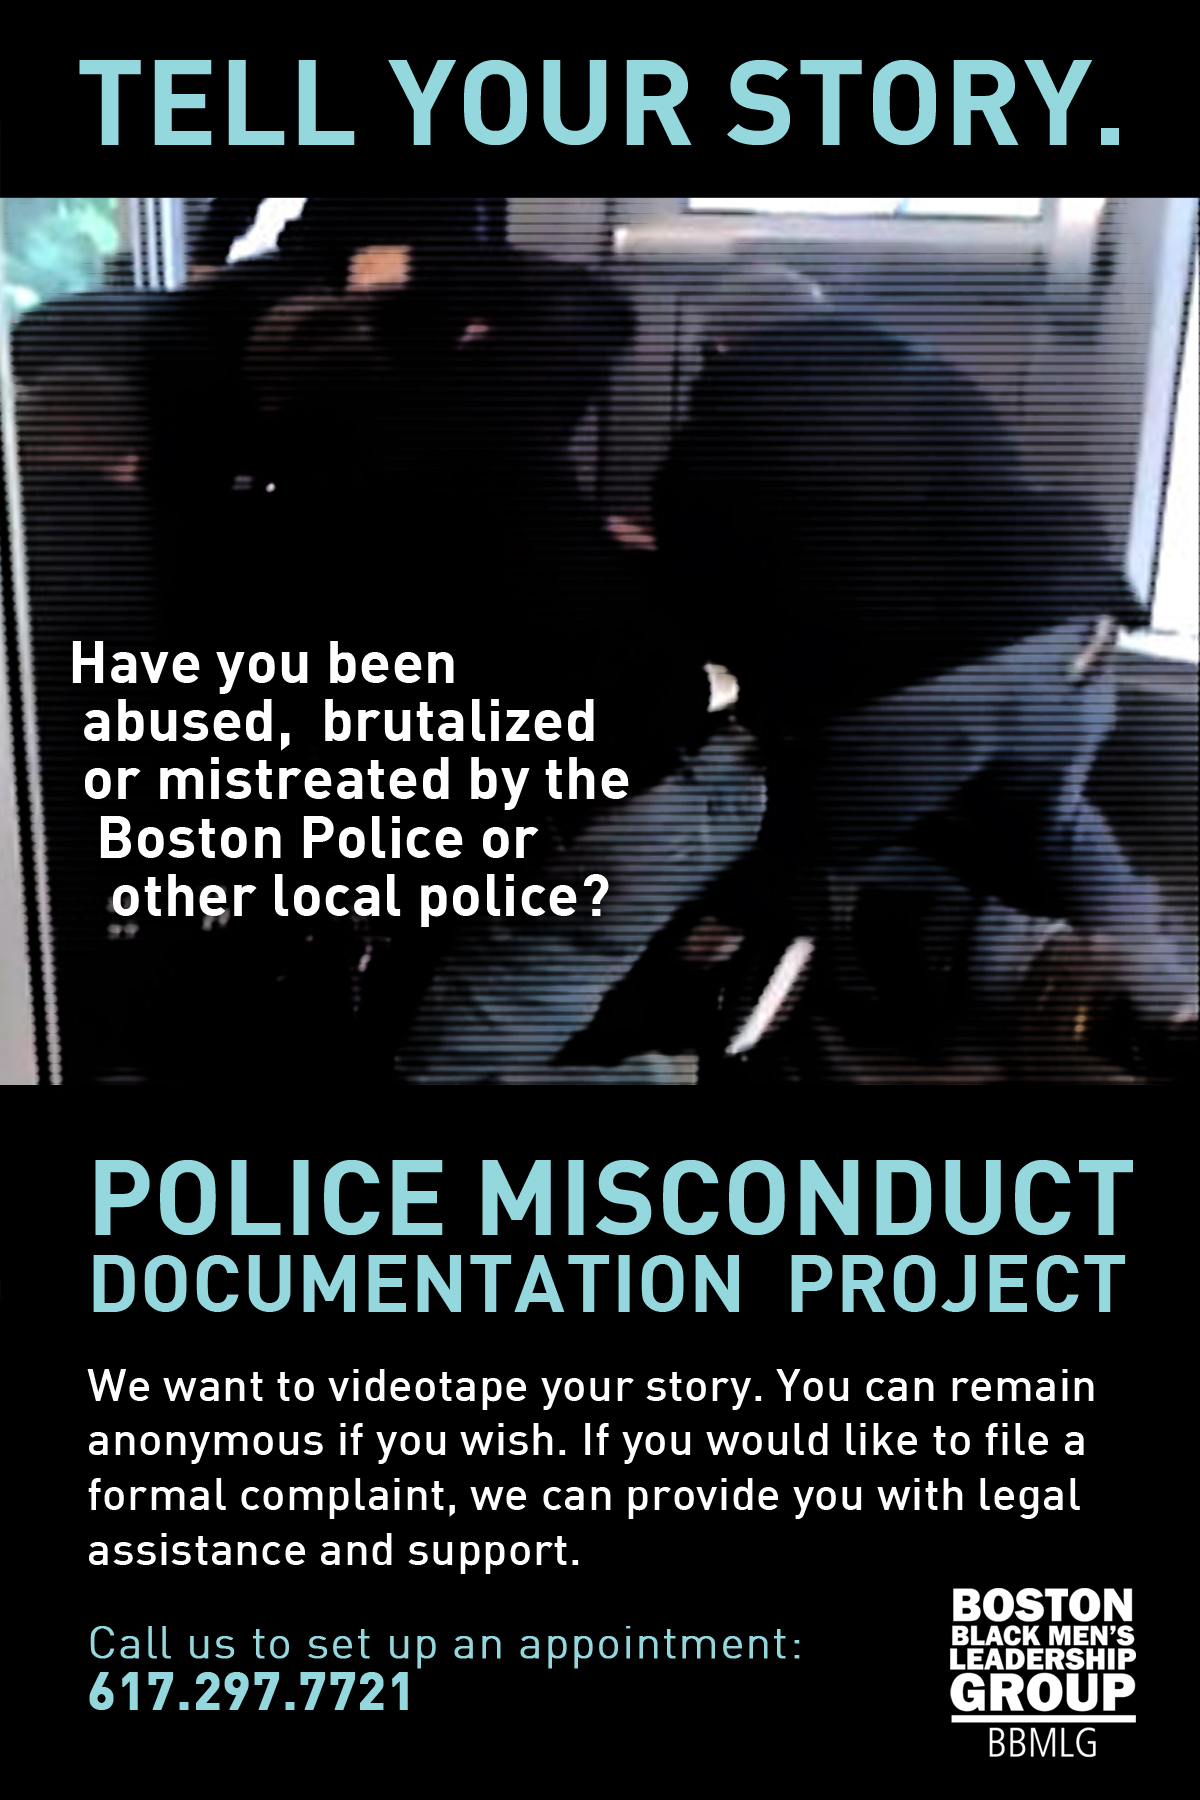 Police Misconduct Documentation Project